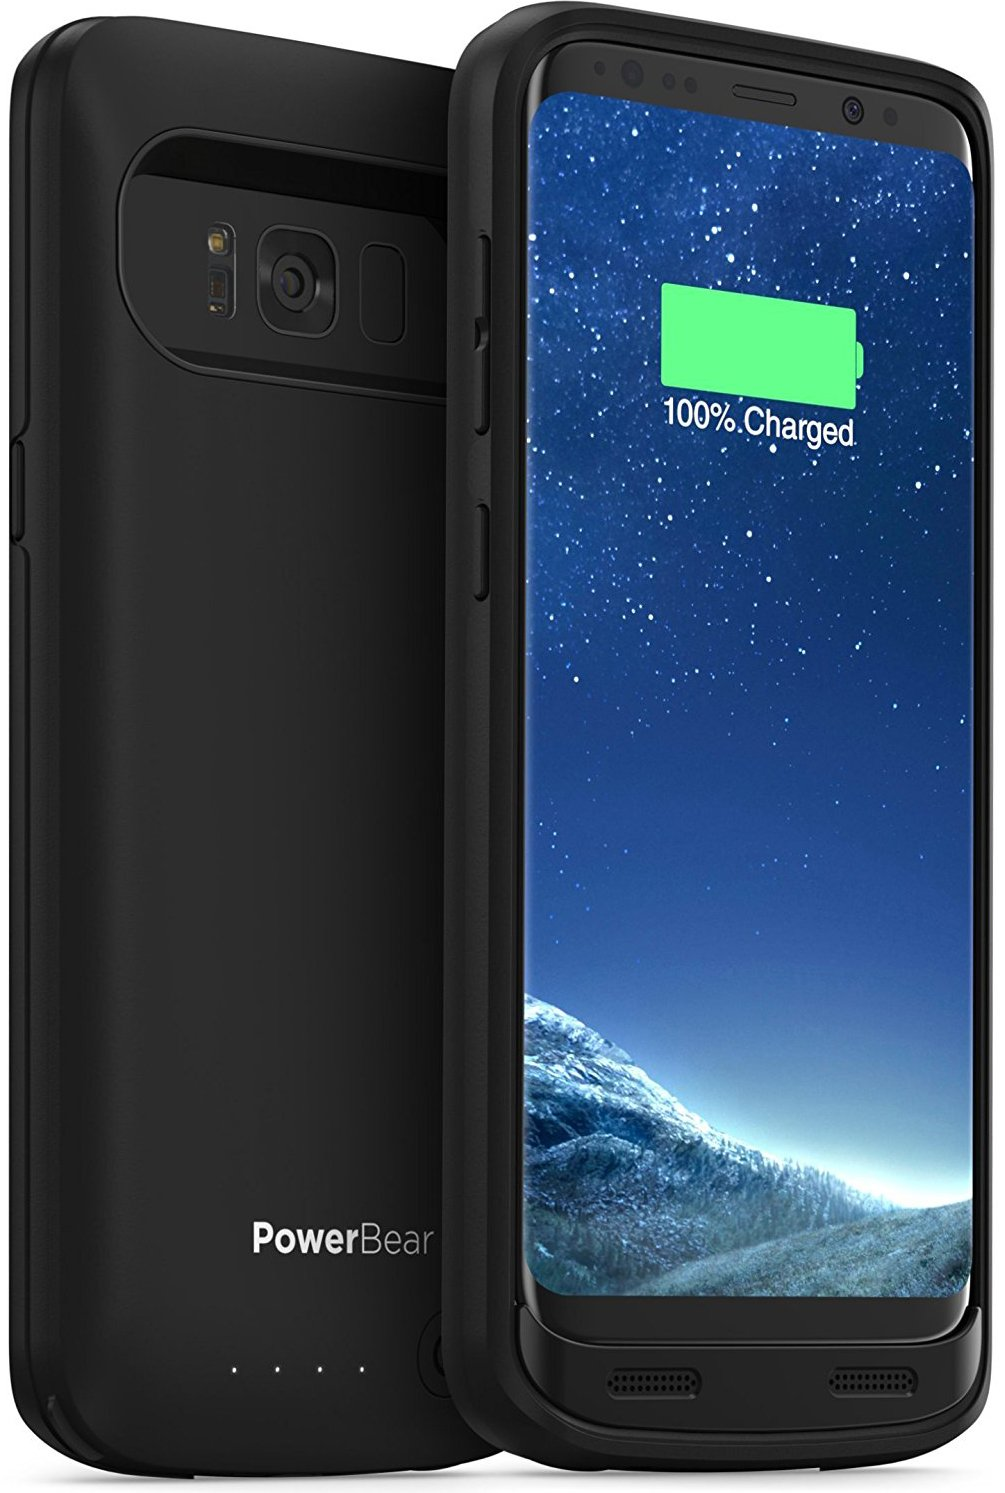 PowerBear Samsung Galaxy S8 Battery Case [4500mAh] High Capacity External Battery Charger for Galaxy S8 (Up to 150% Extra Battery) – BLACK [24 Month Warranty & Screen Protector Included]